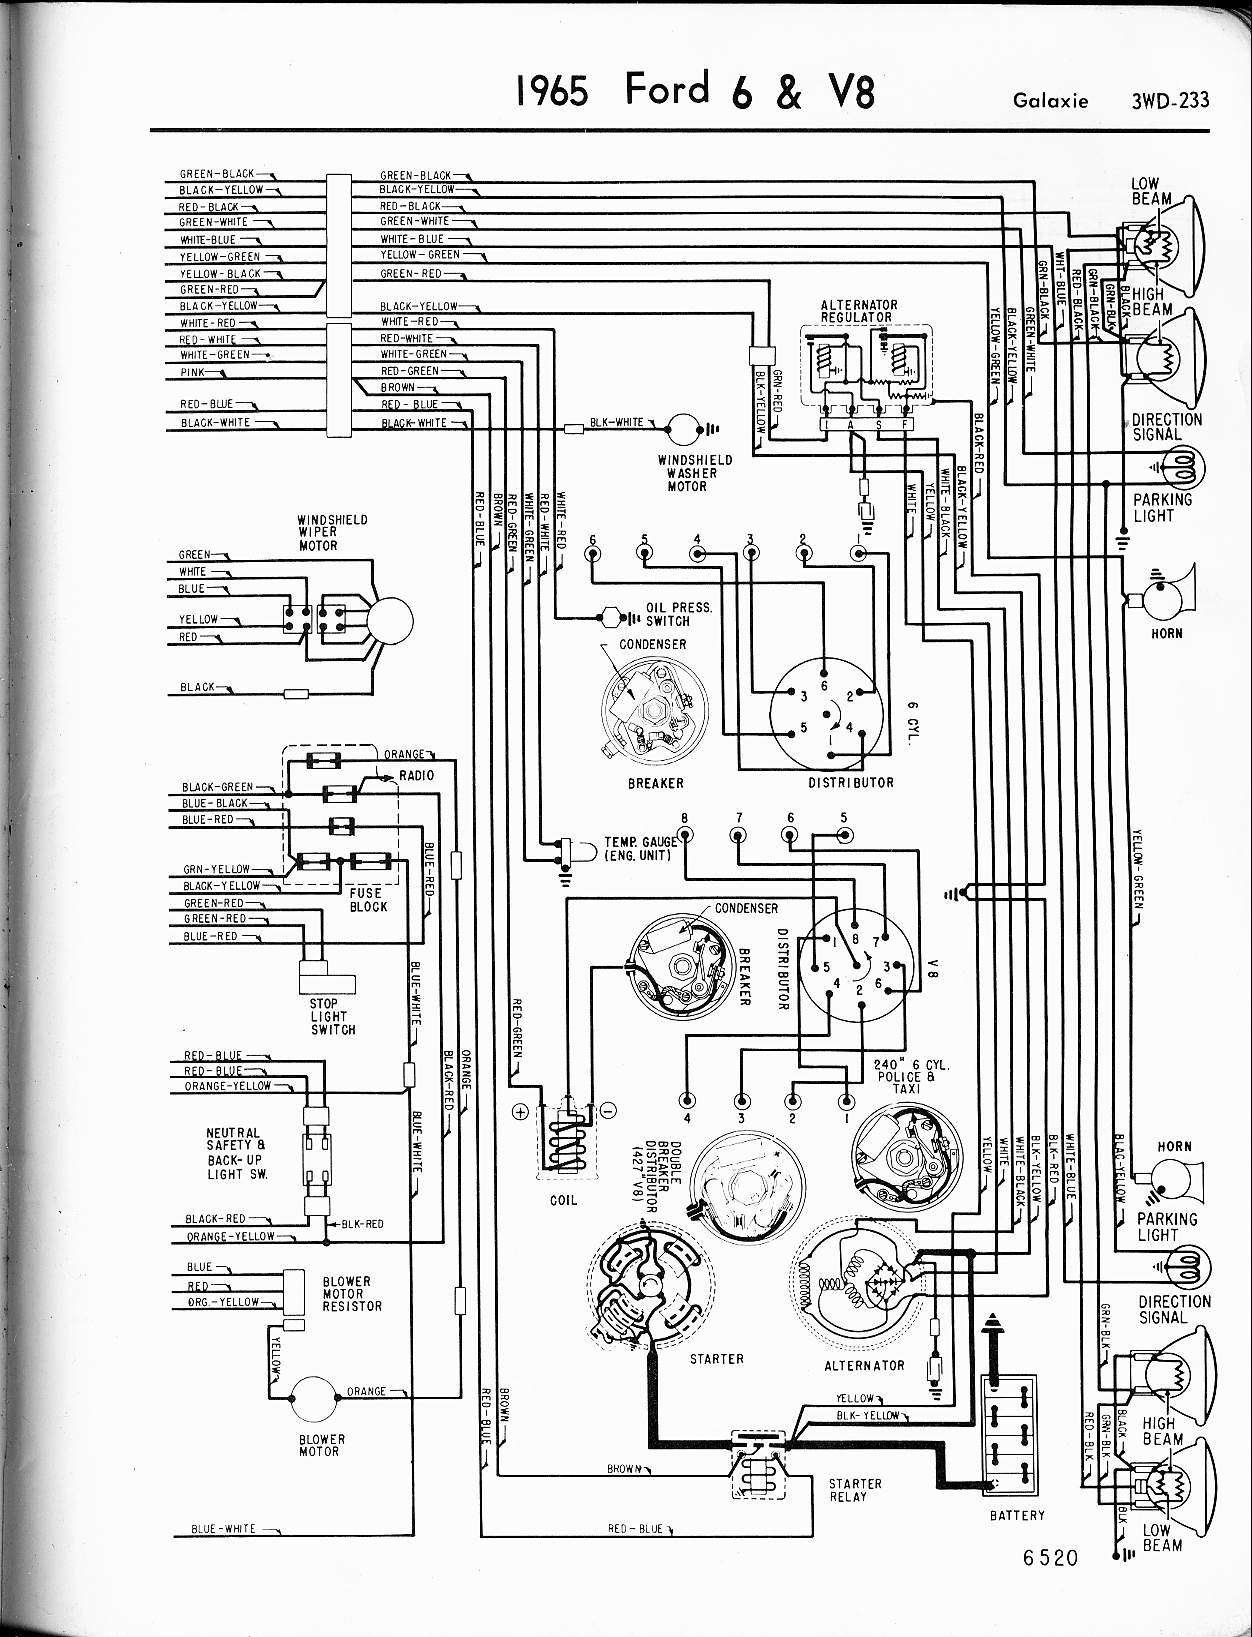 Fabulous 64 Cj5 Wiring Diagram Wiring Diagram Database Wiring 101 Akebretraxxcnl